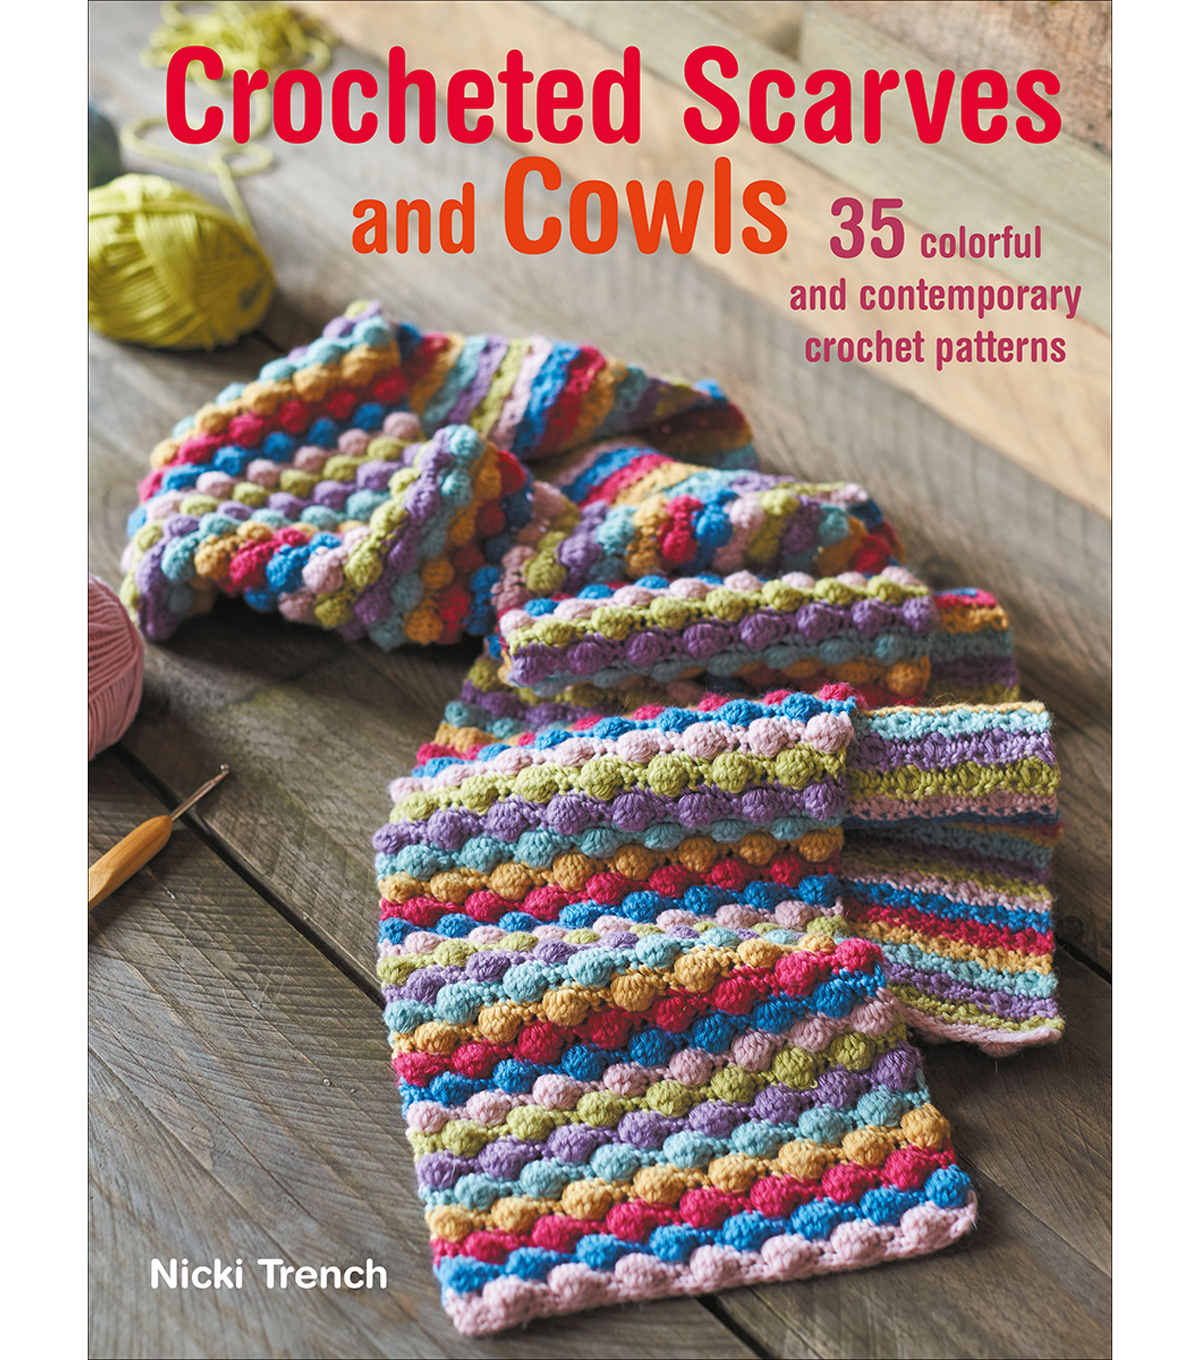 Crocheted Scarves And Cowls Book